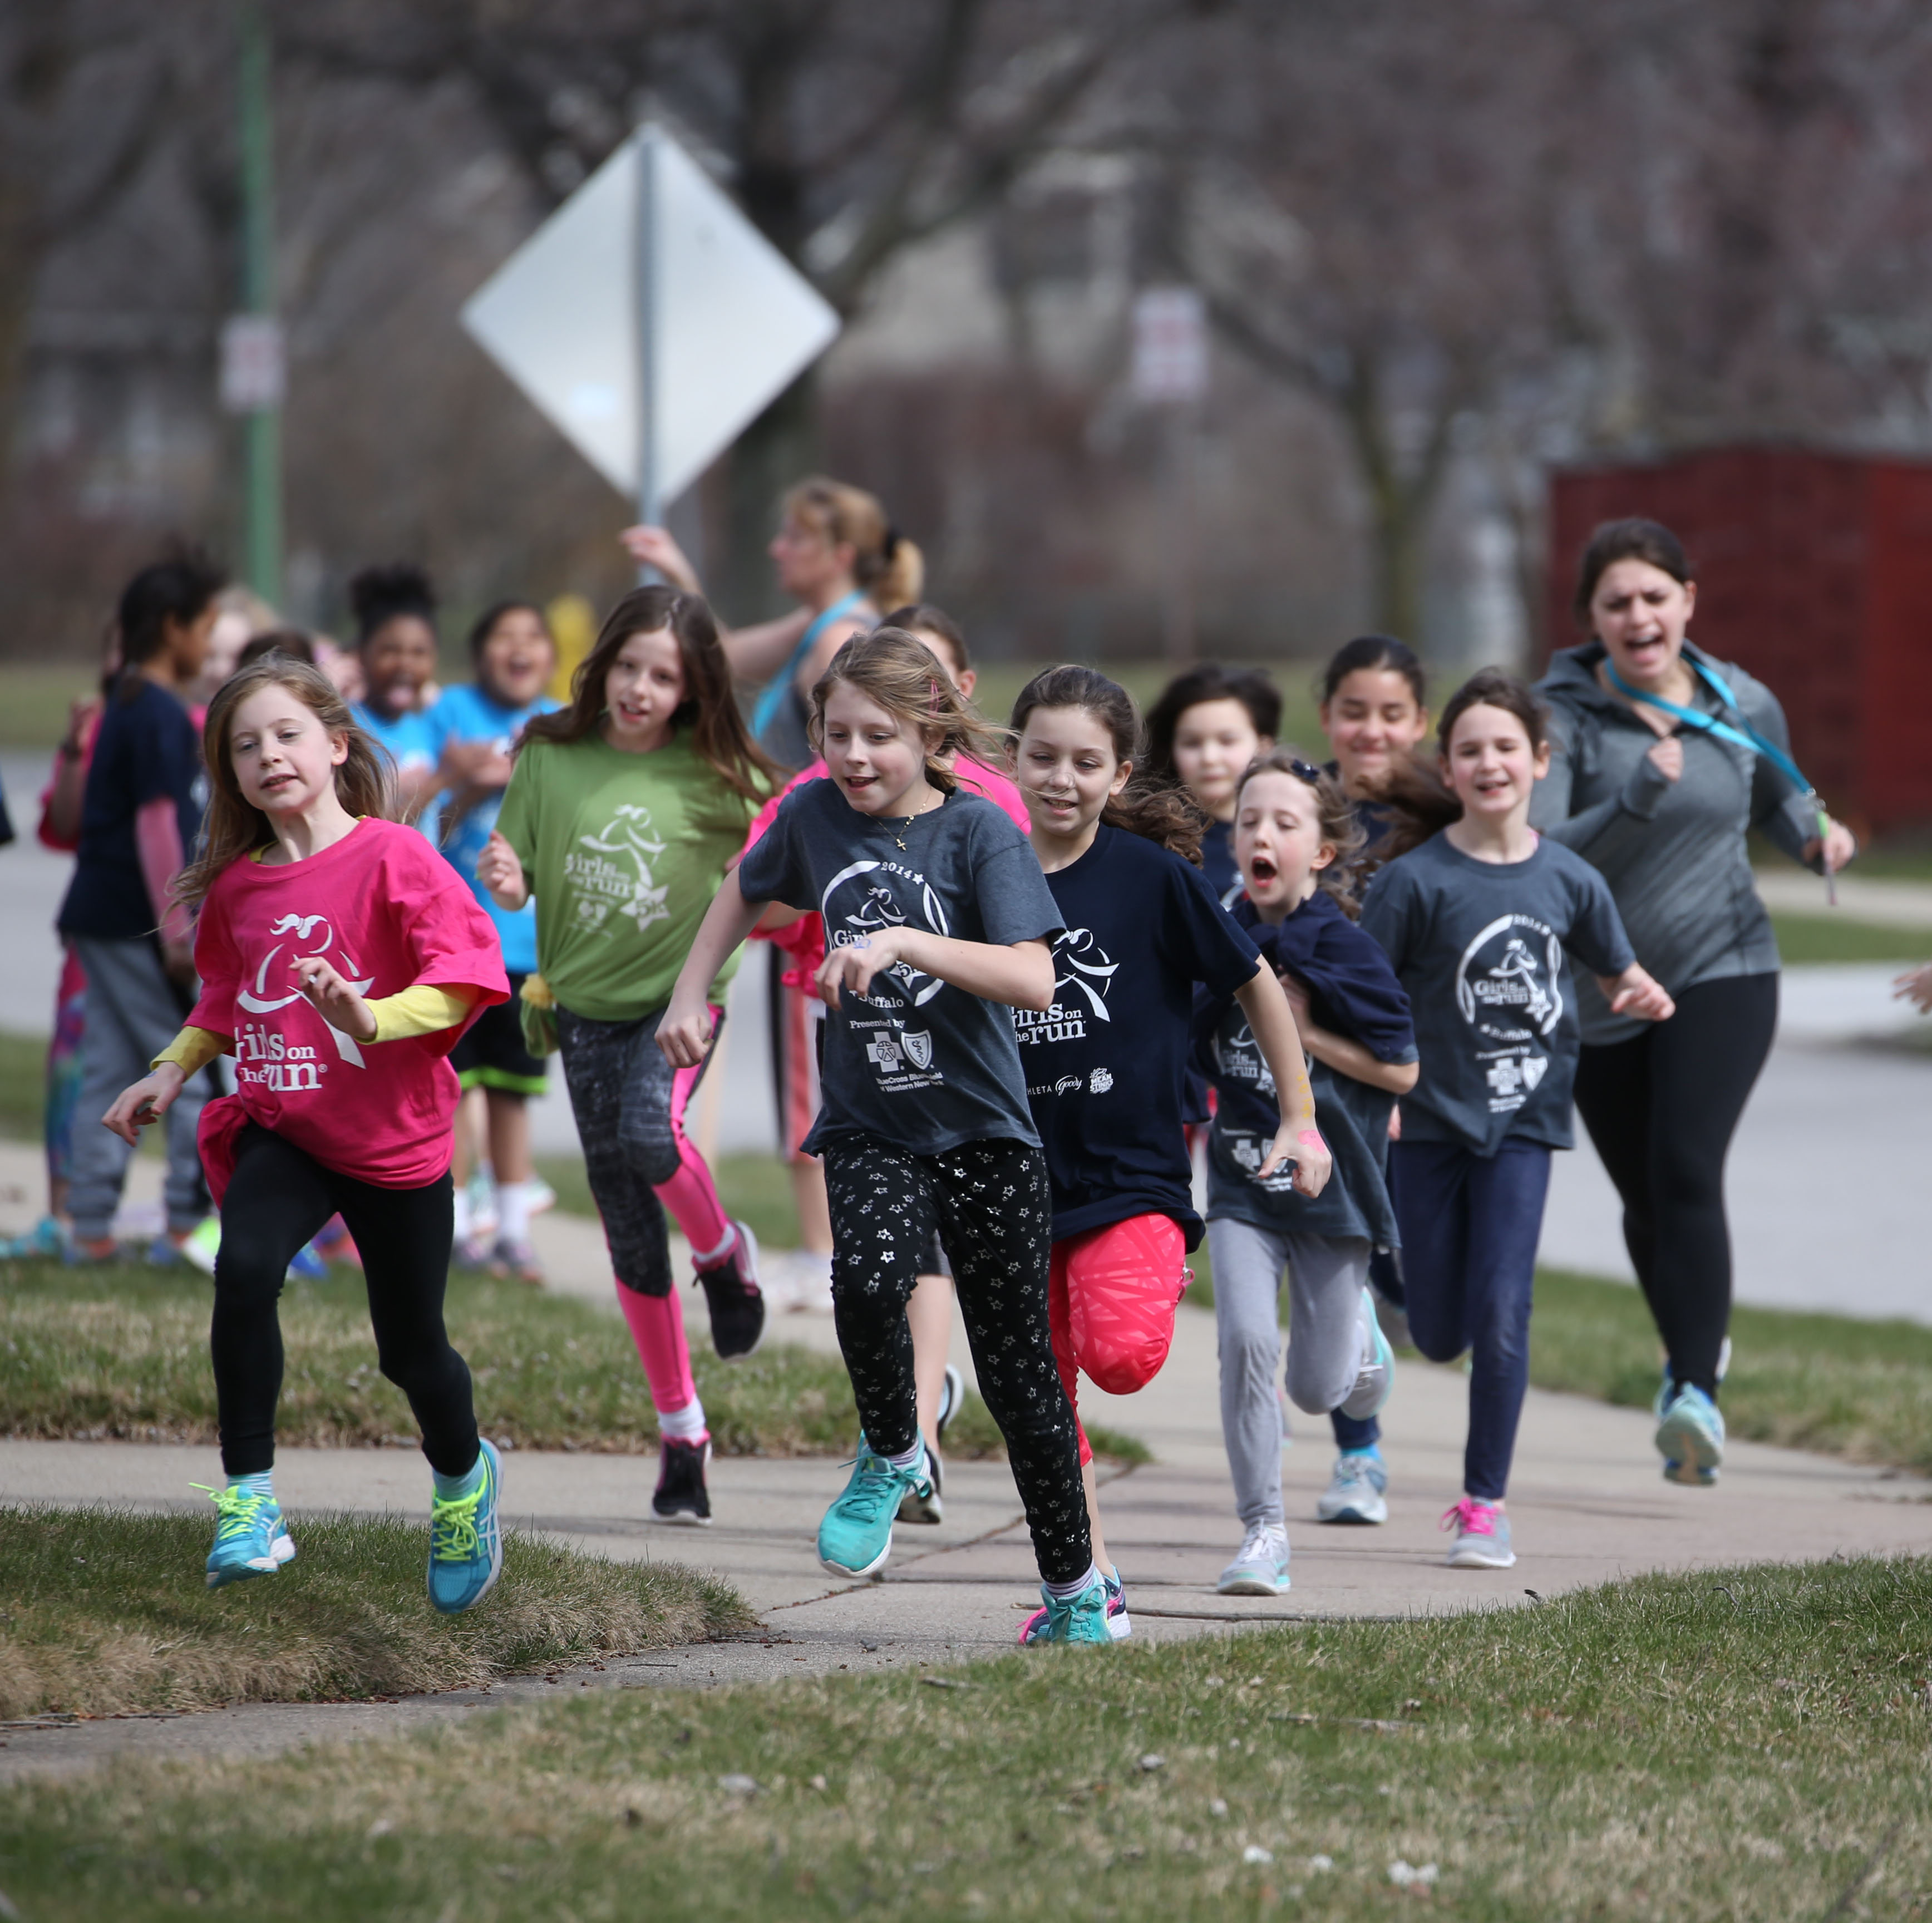 Twenty-eight girls at Forest Elementary School participate in the national Girls on the Run program. Parents and other adults can use the lessons of this and similar programs to help children develop a love for fitness, teamwork and good decision-making. (Photos by Sharon Cantillon/Buffalo News)